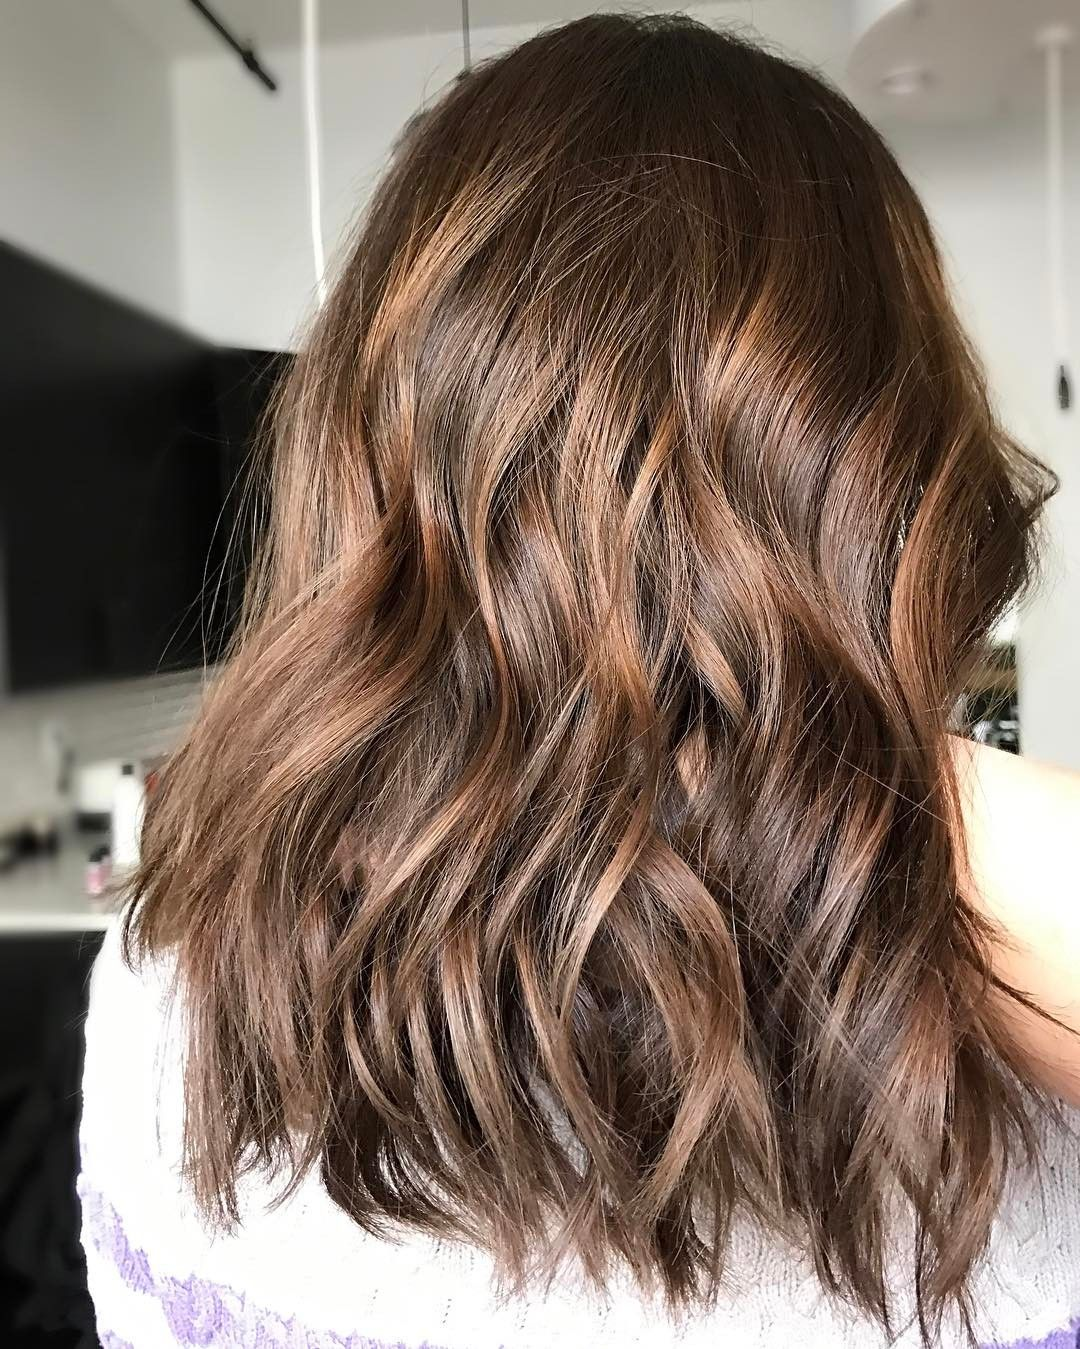 Anna Is One Of My Very First Clients When We Met She Had Porous Blonde Hair With Dark Brown Salon Col Toner For Brown Hair Blue Brown Hair Honey Hair Color